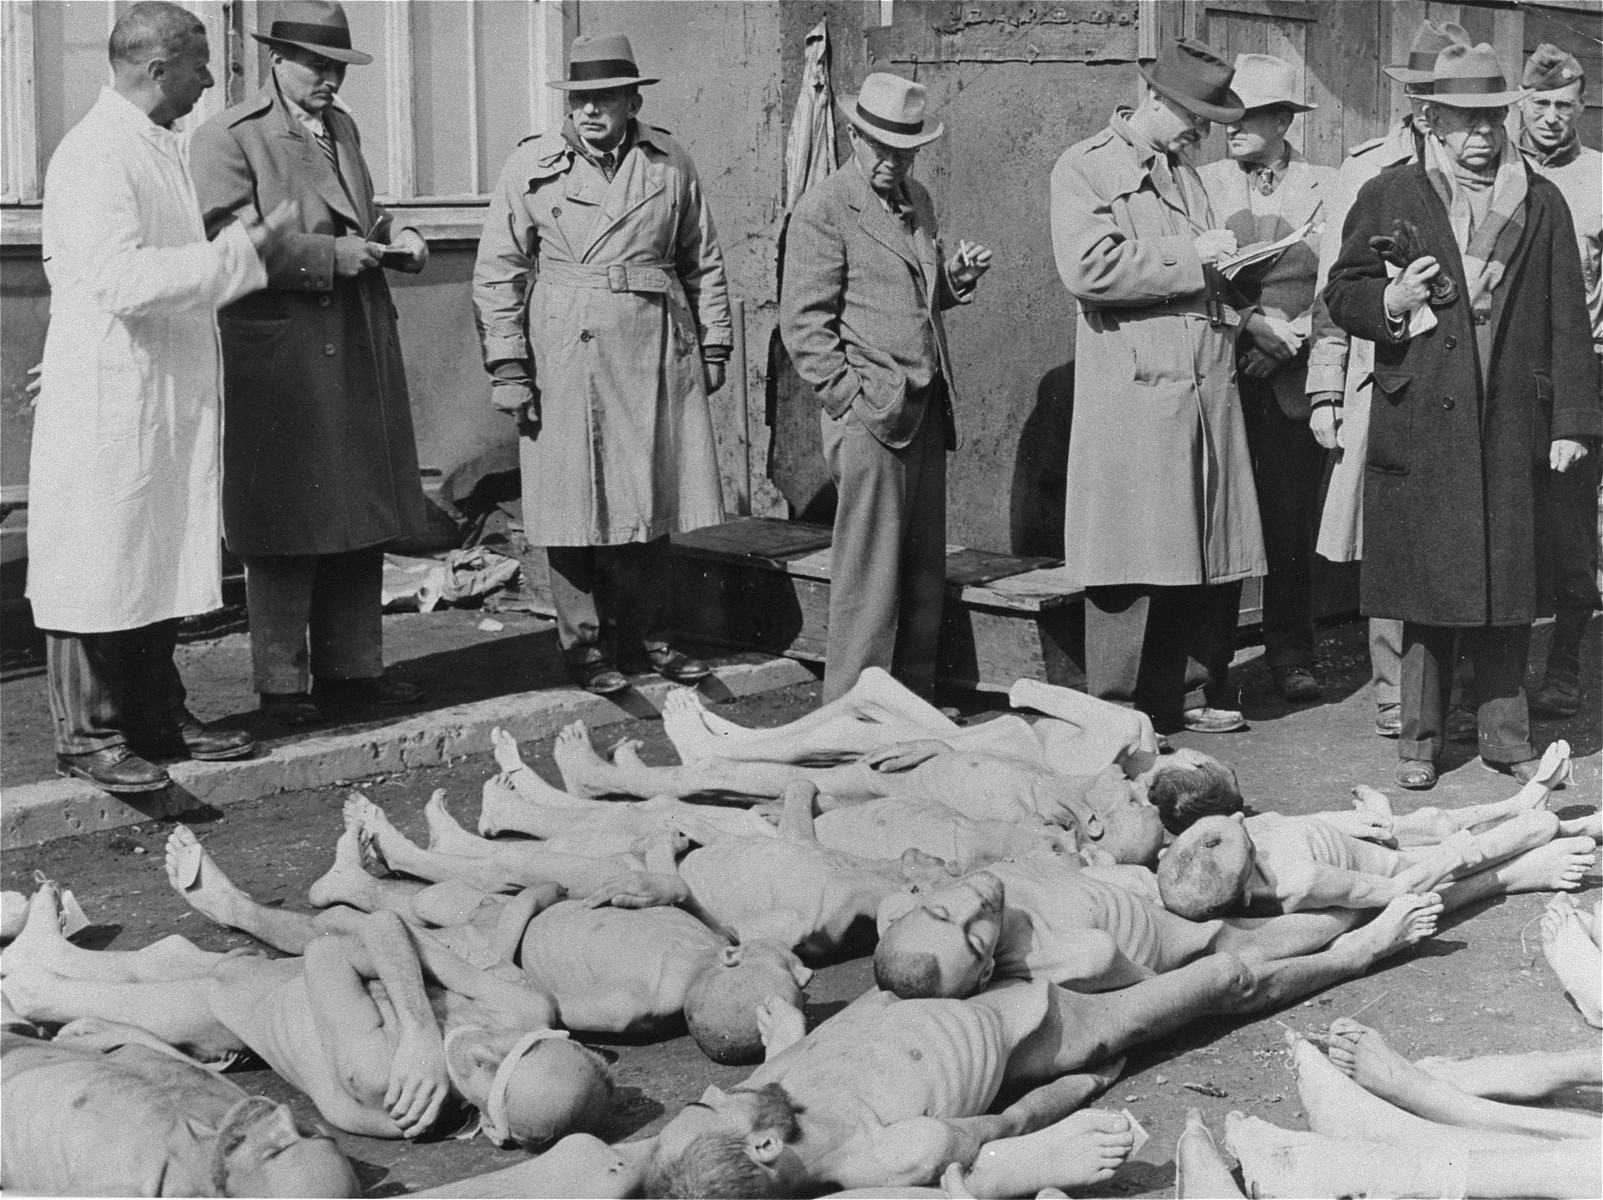 A group of American editors and publishers in Dachau are shown the corpses of prisoners during their investigation of the camp.